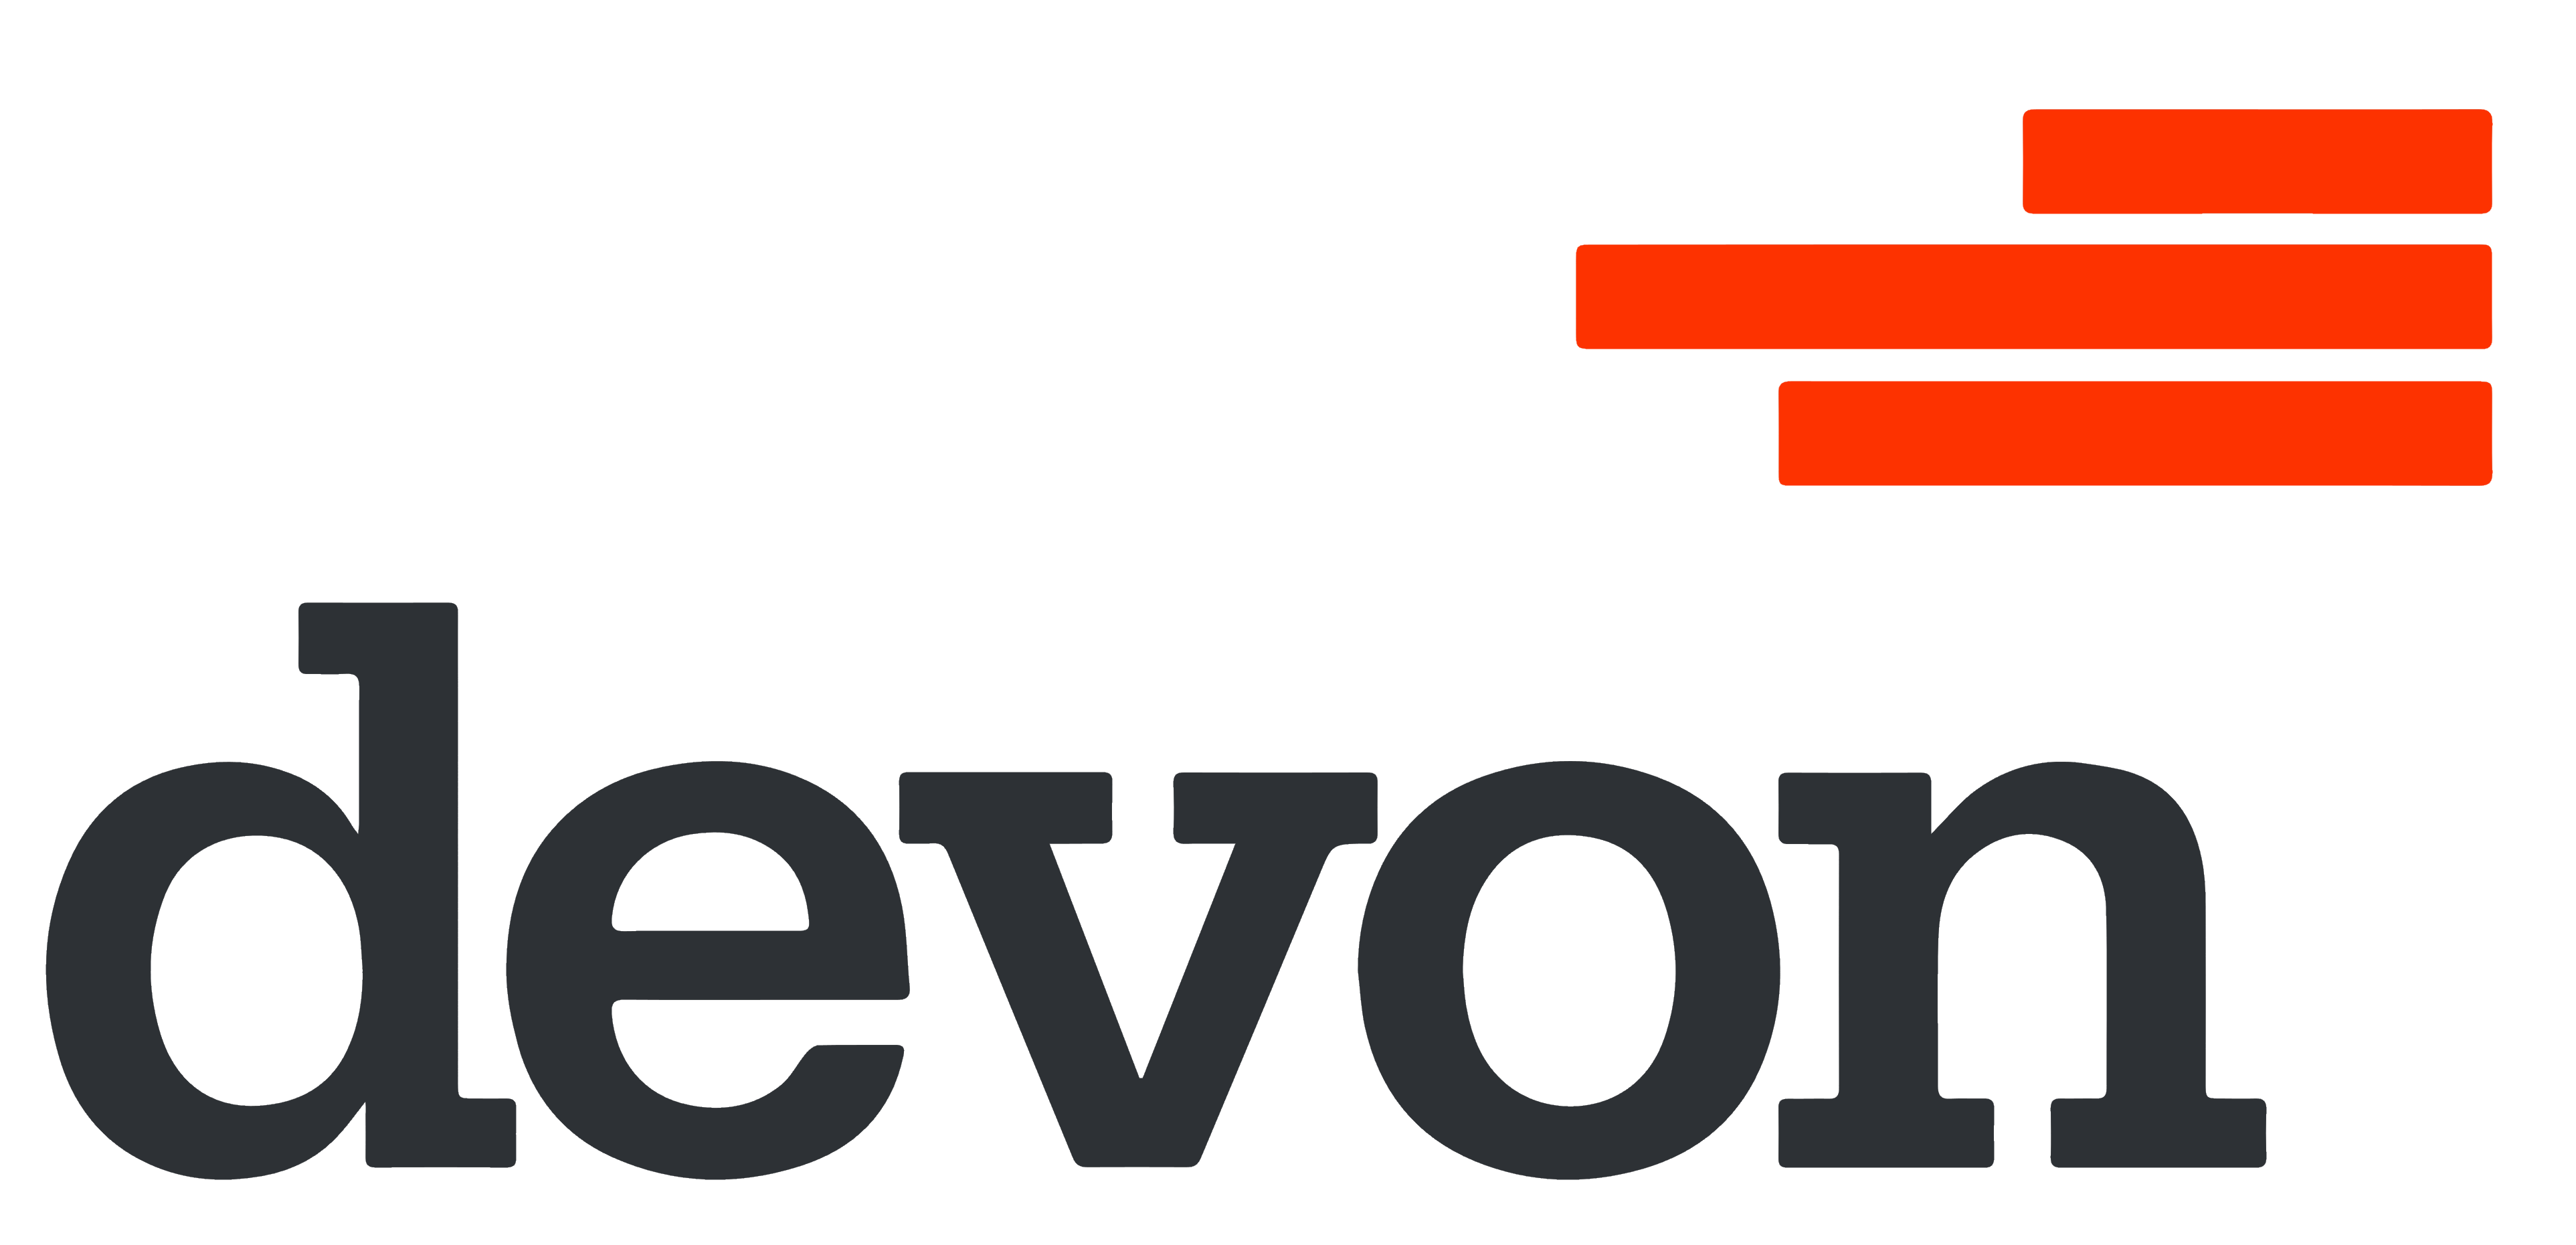 Devon Energy logo - Devon Energy Logo Eps PNG